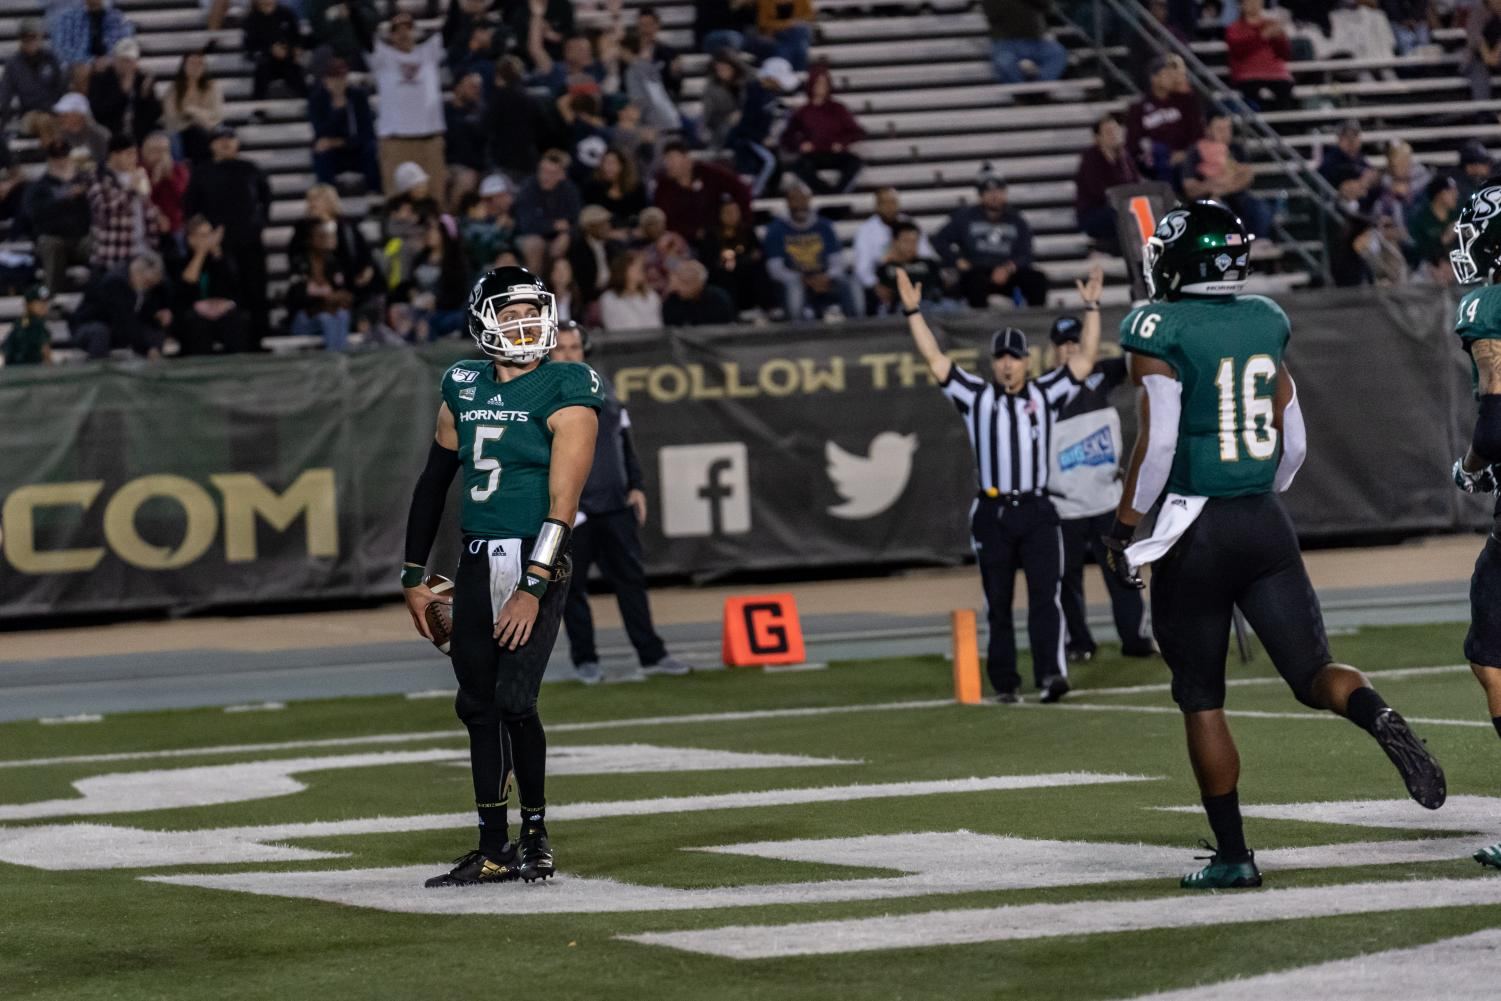 Sac State junior quarterback Kevin Thomson celebrates as he scores a touchdown against Montana Saturday, Oct.19 at Hornet Field. Thomson finished the game with a total of 2 rushing touchdowns in the win.